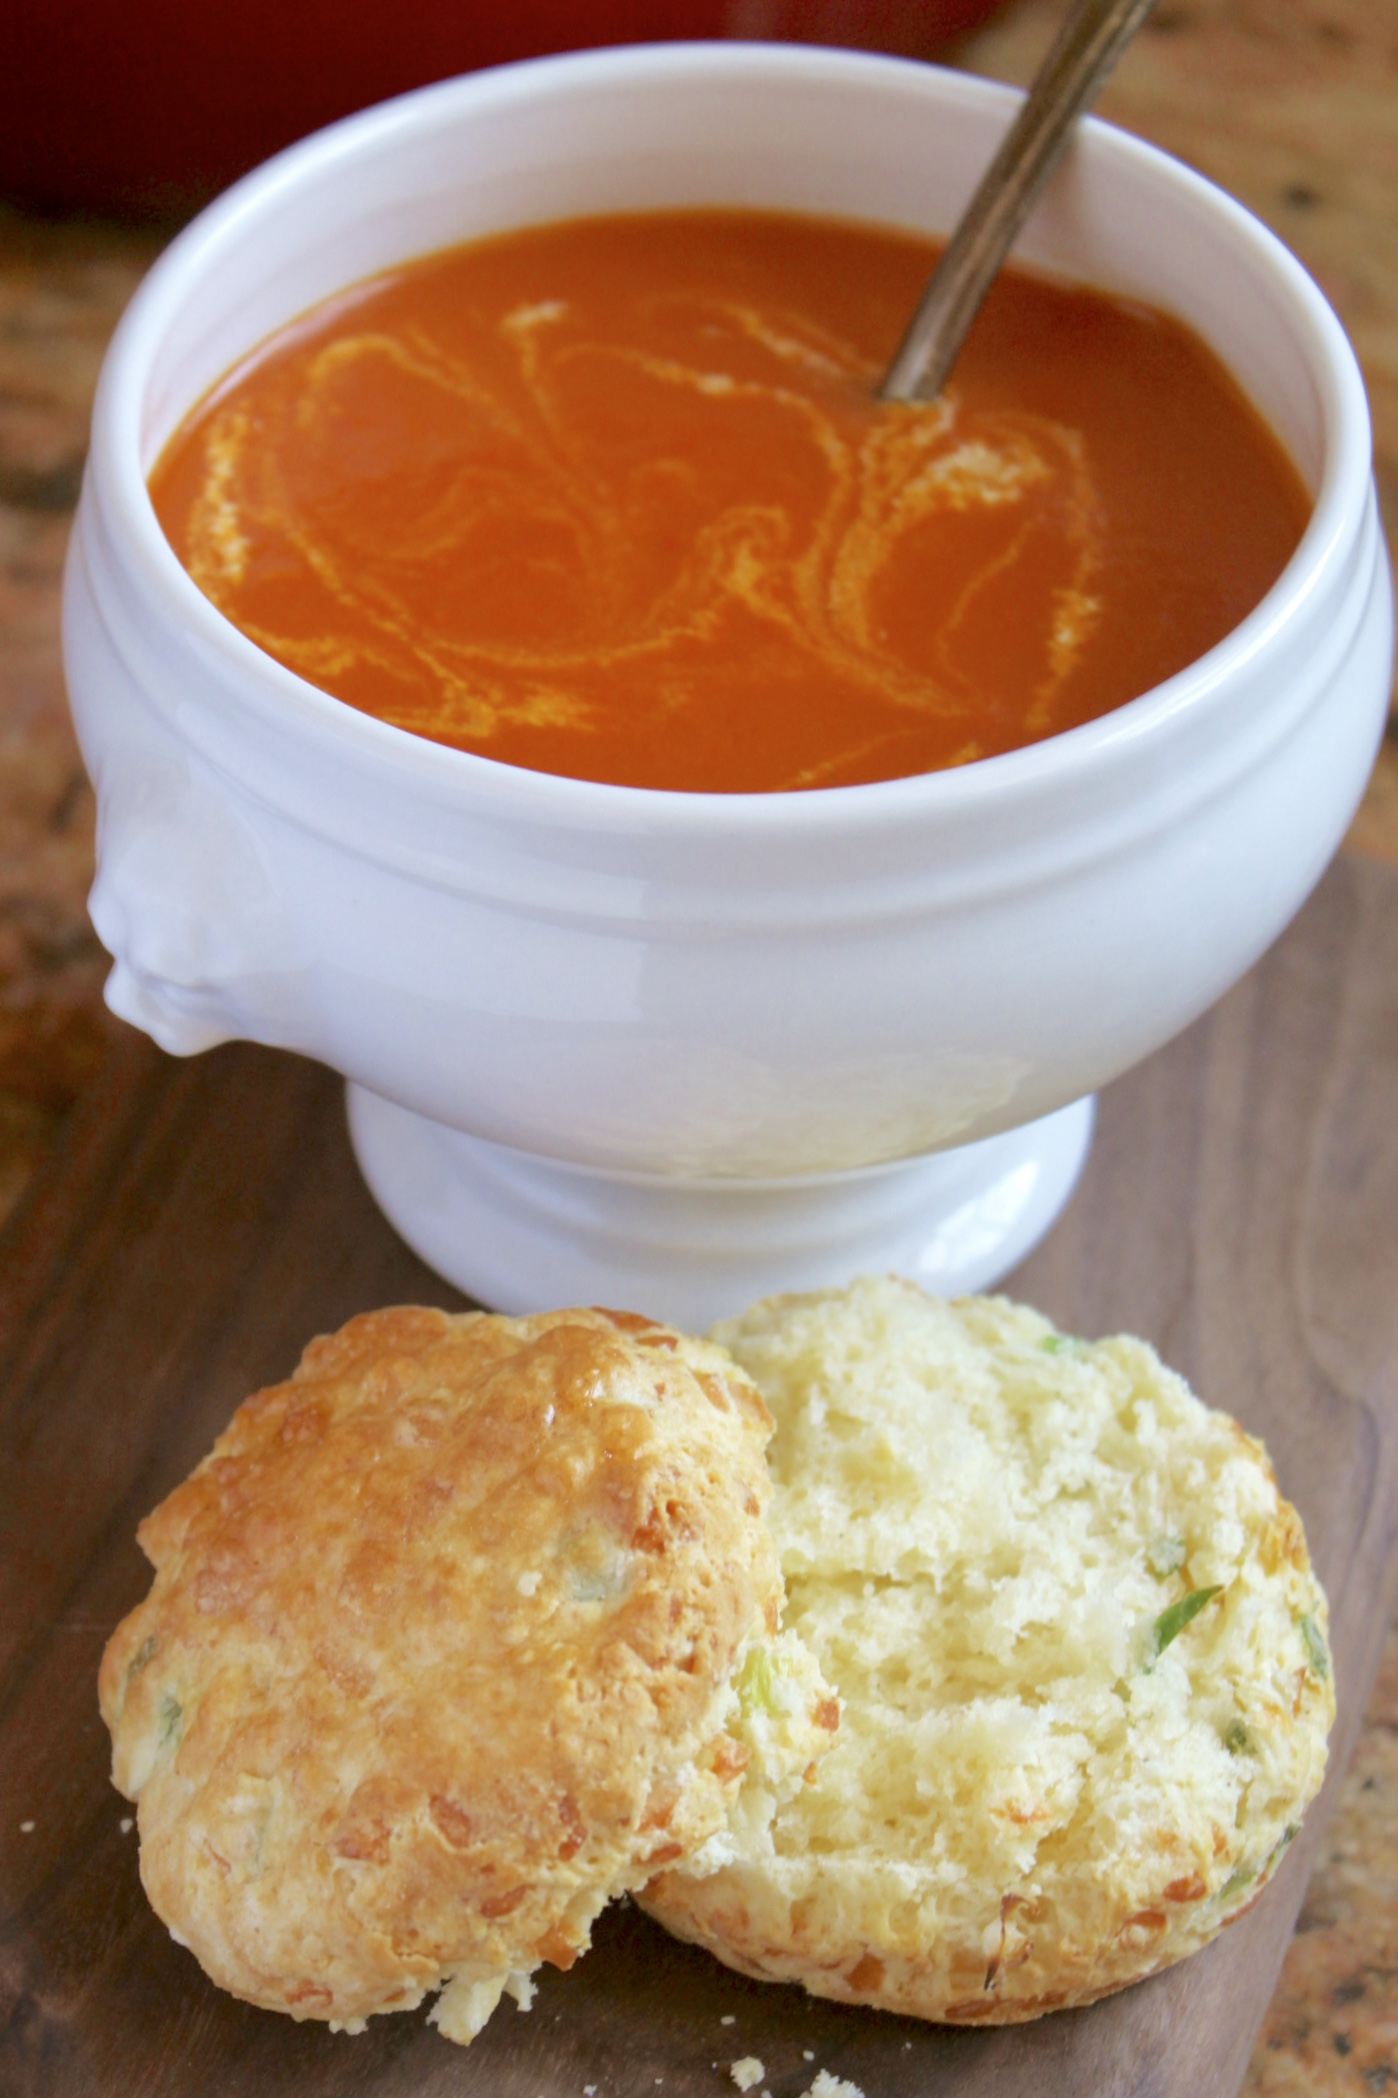 Tomato turmeric soup in a bowl with a cheese scone